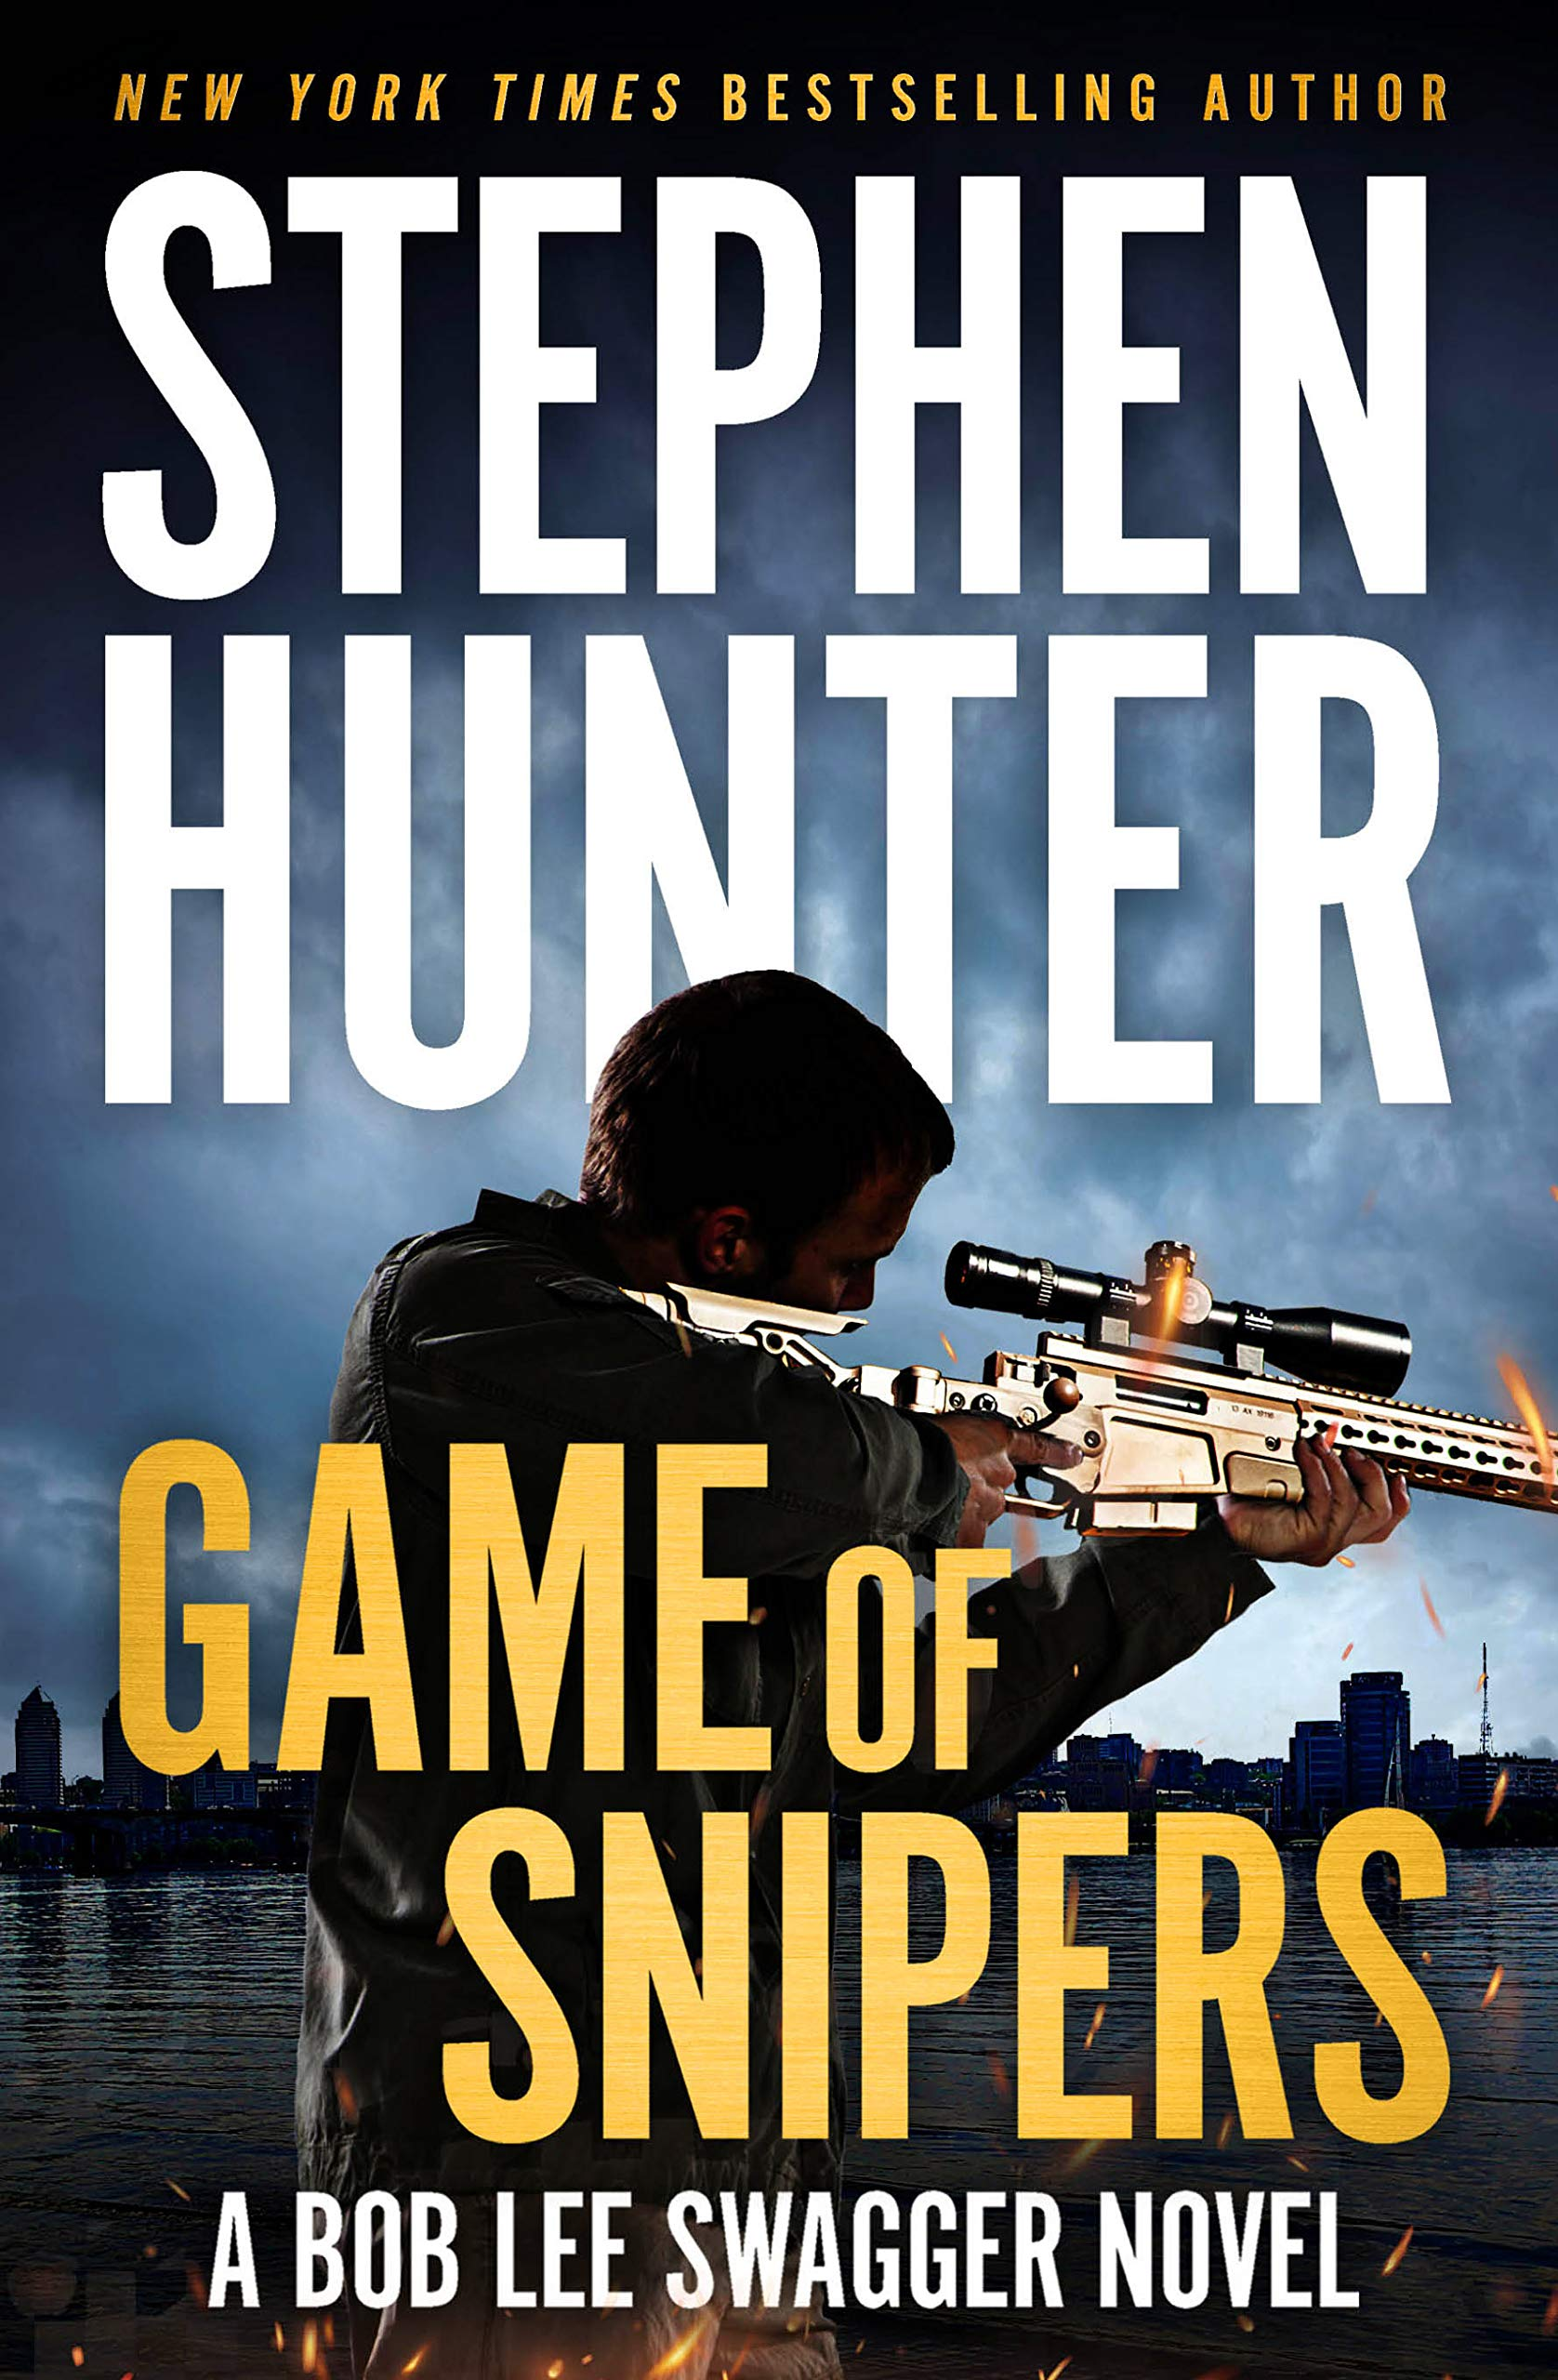 Amazon.com: Game of Snipers (Bob Lee Swagger) (9780399574573): Stephen  Hunter: Books